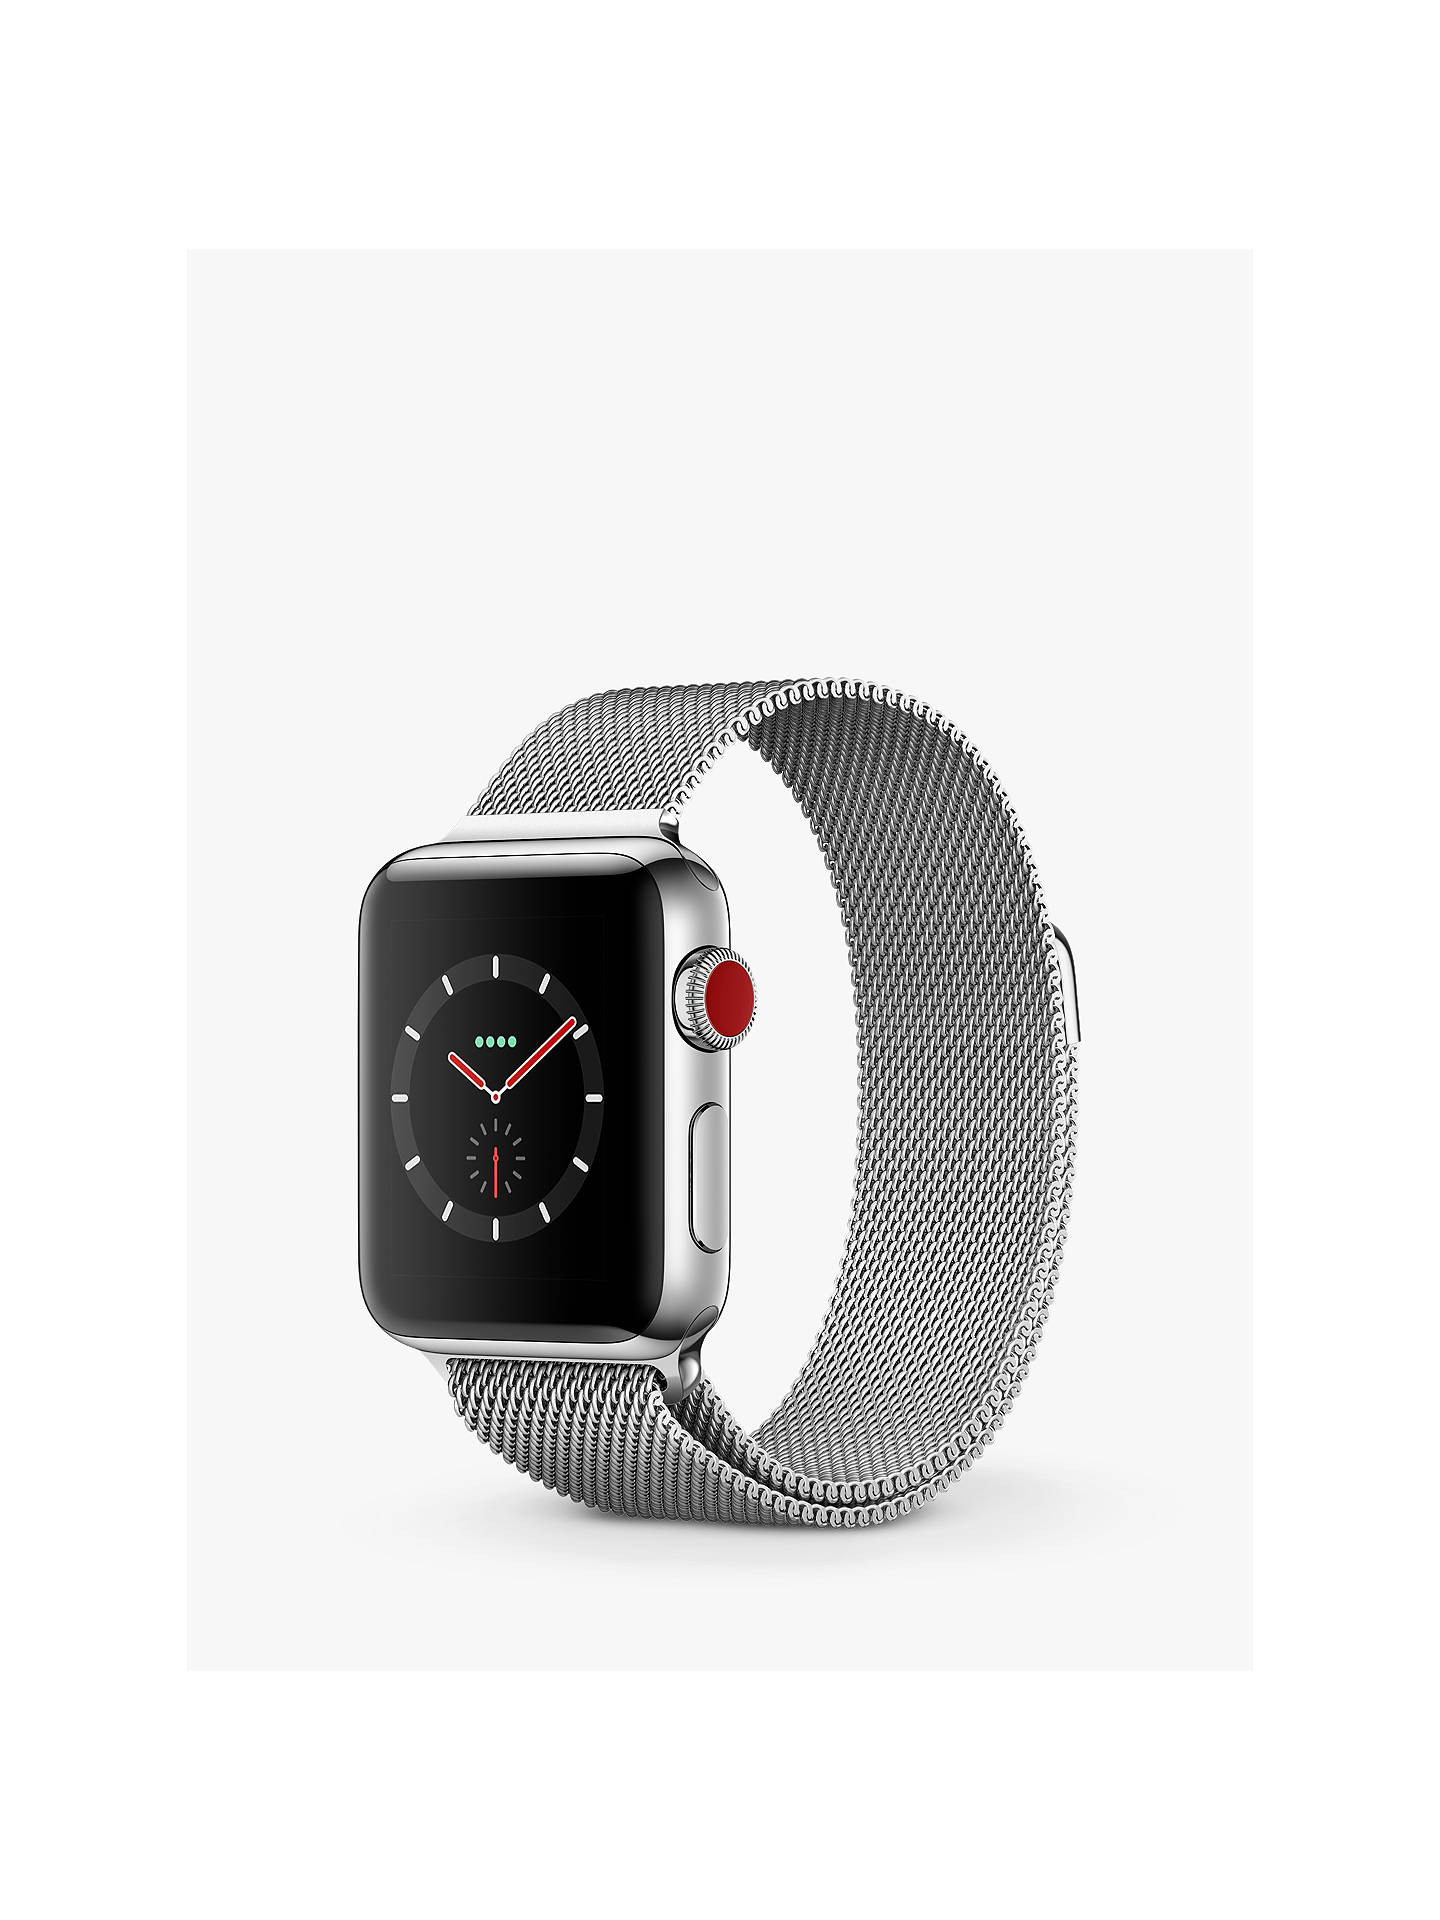 Apple Watch Series 3, GPS and Cellular, 38mm Stainless Steel Case with Milanese Loop, Silver